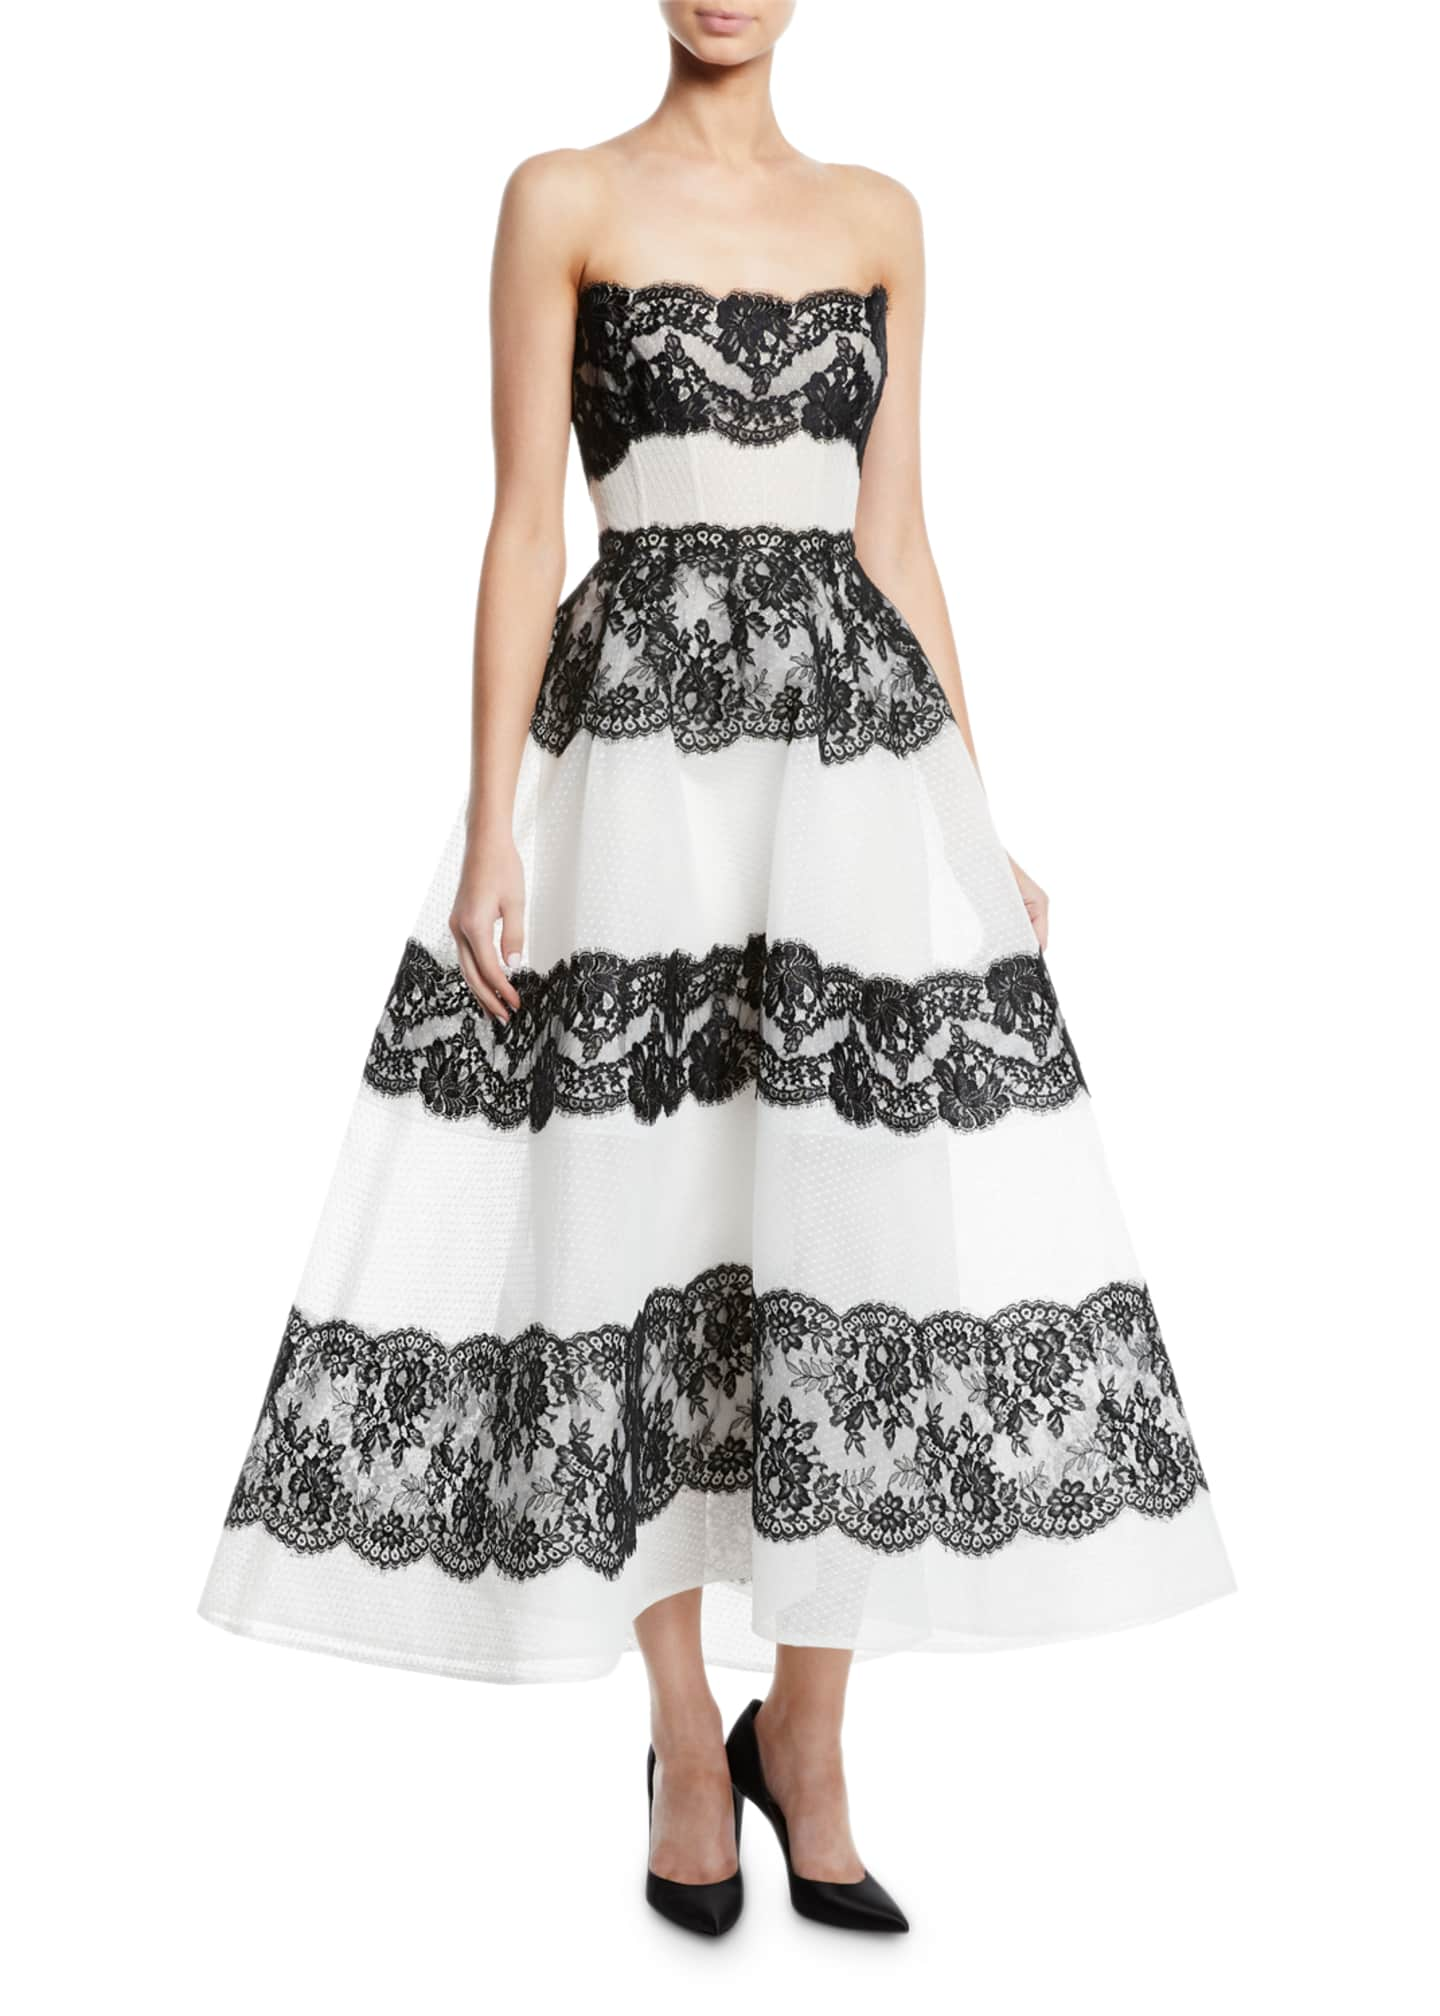 Monique Lhuillier Corseted Strapless Tea-Length Gown with Lace